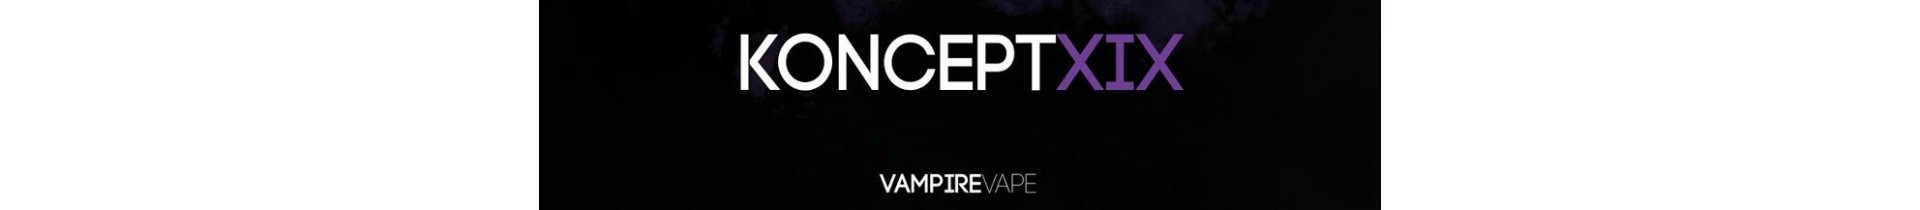 KONCENTRATY VAMPIRE VAPE 50ML